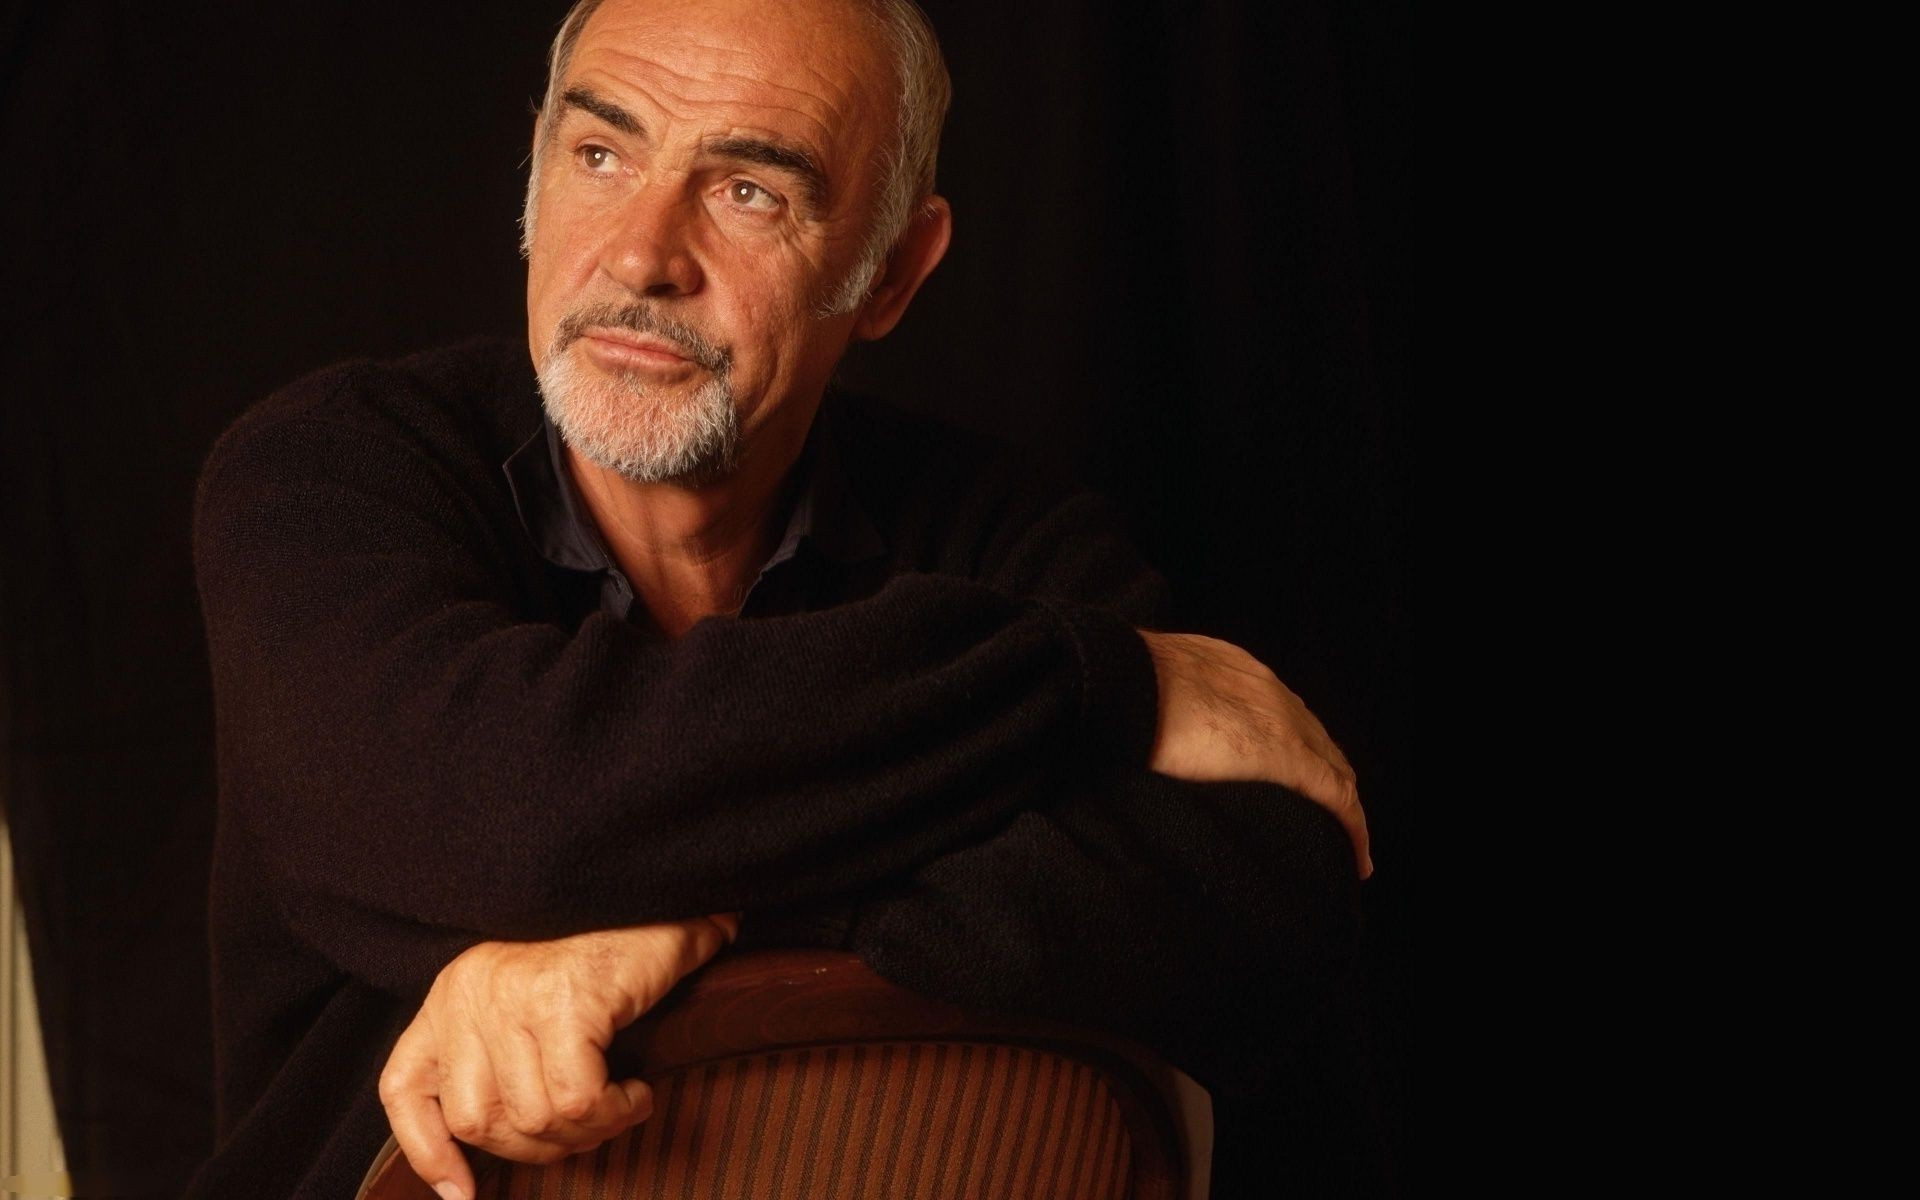 продюссер sean connery мужжина стул Шон коннери актёр